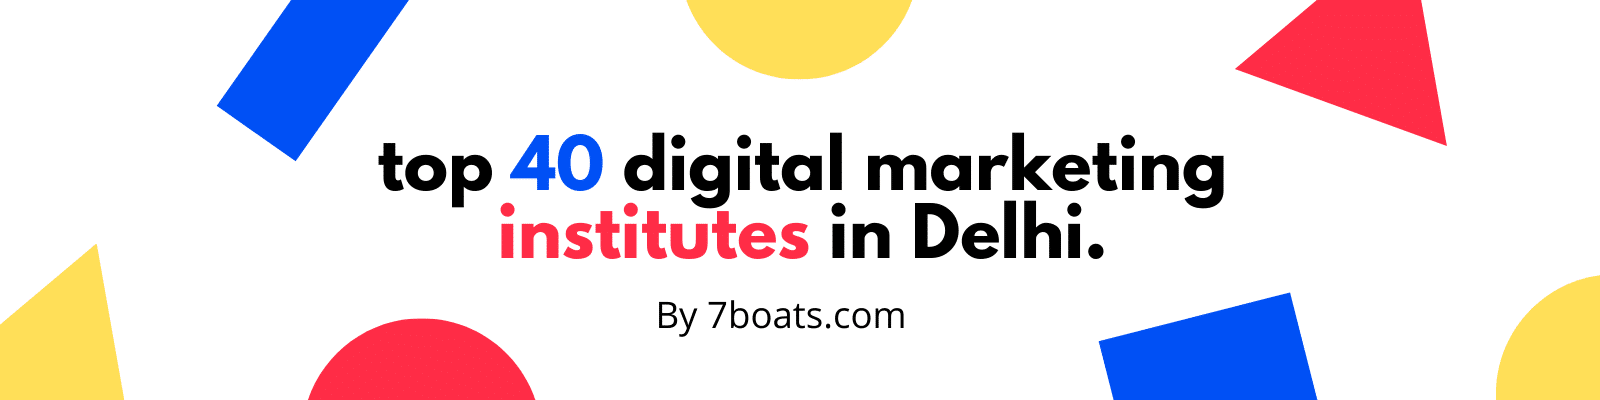 top 40 digital marketing institutes in Delhi.